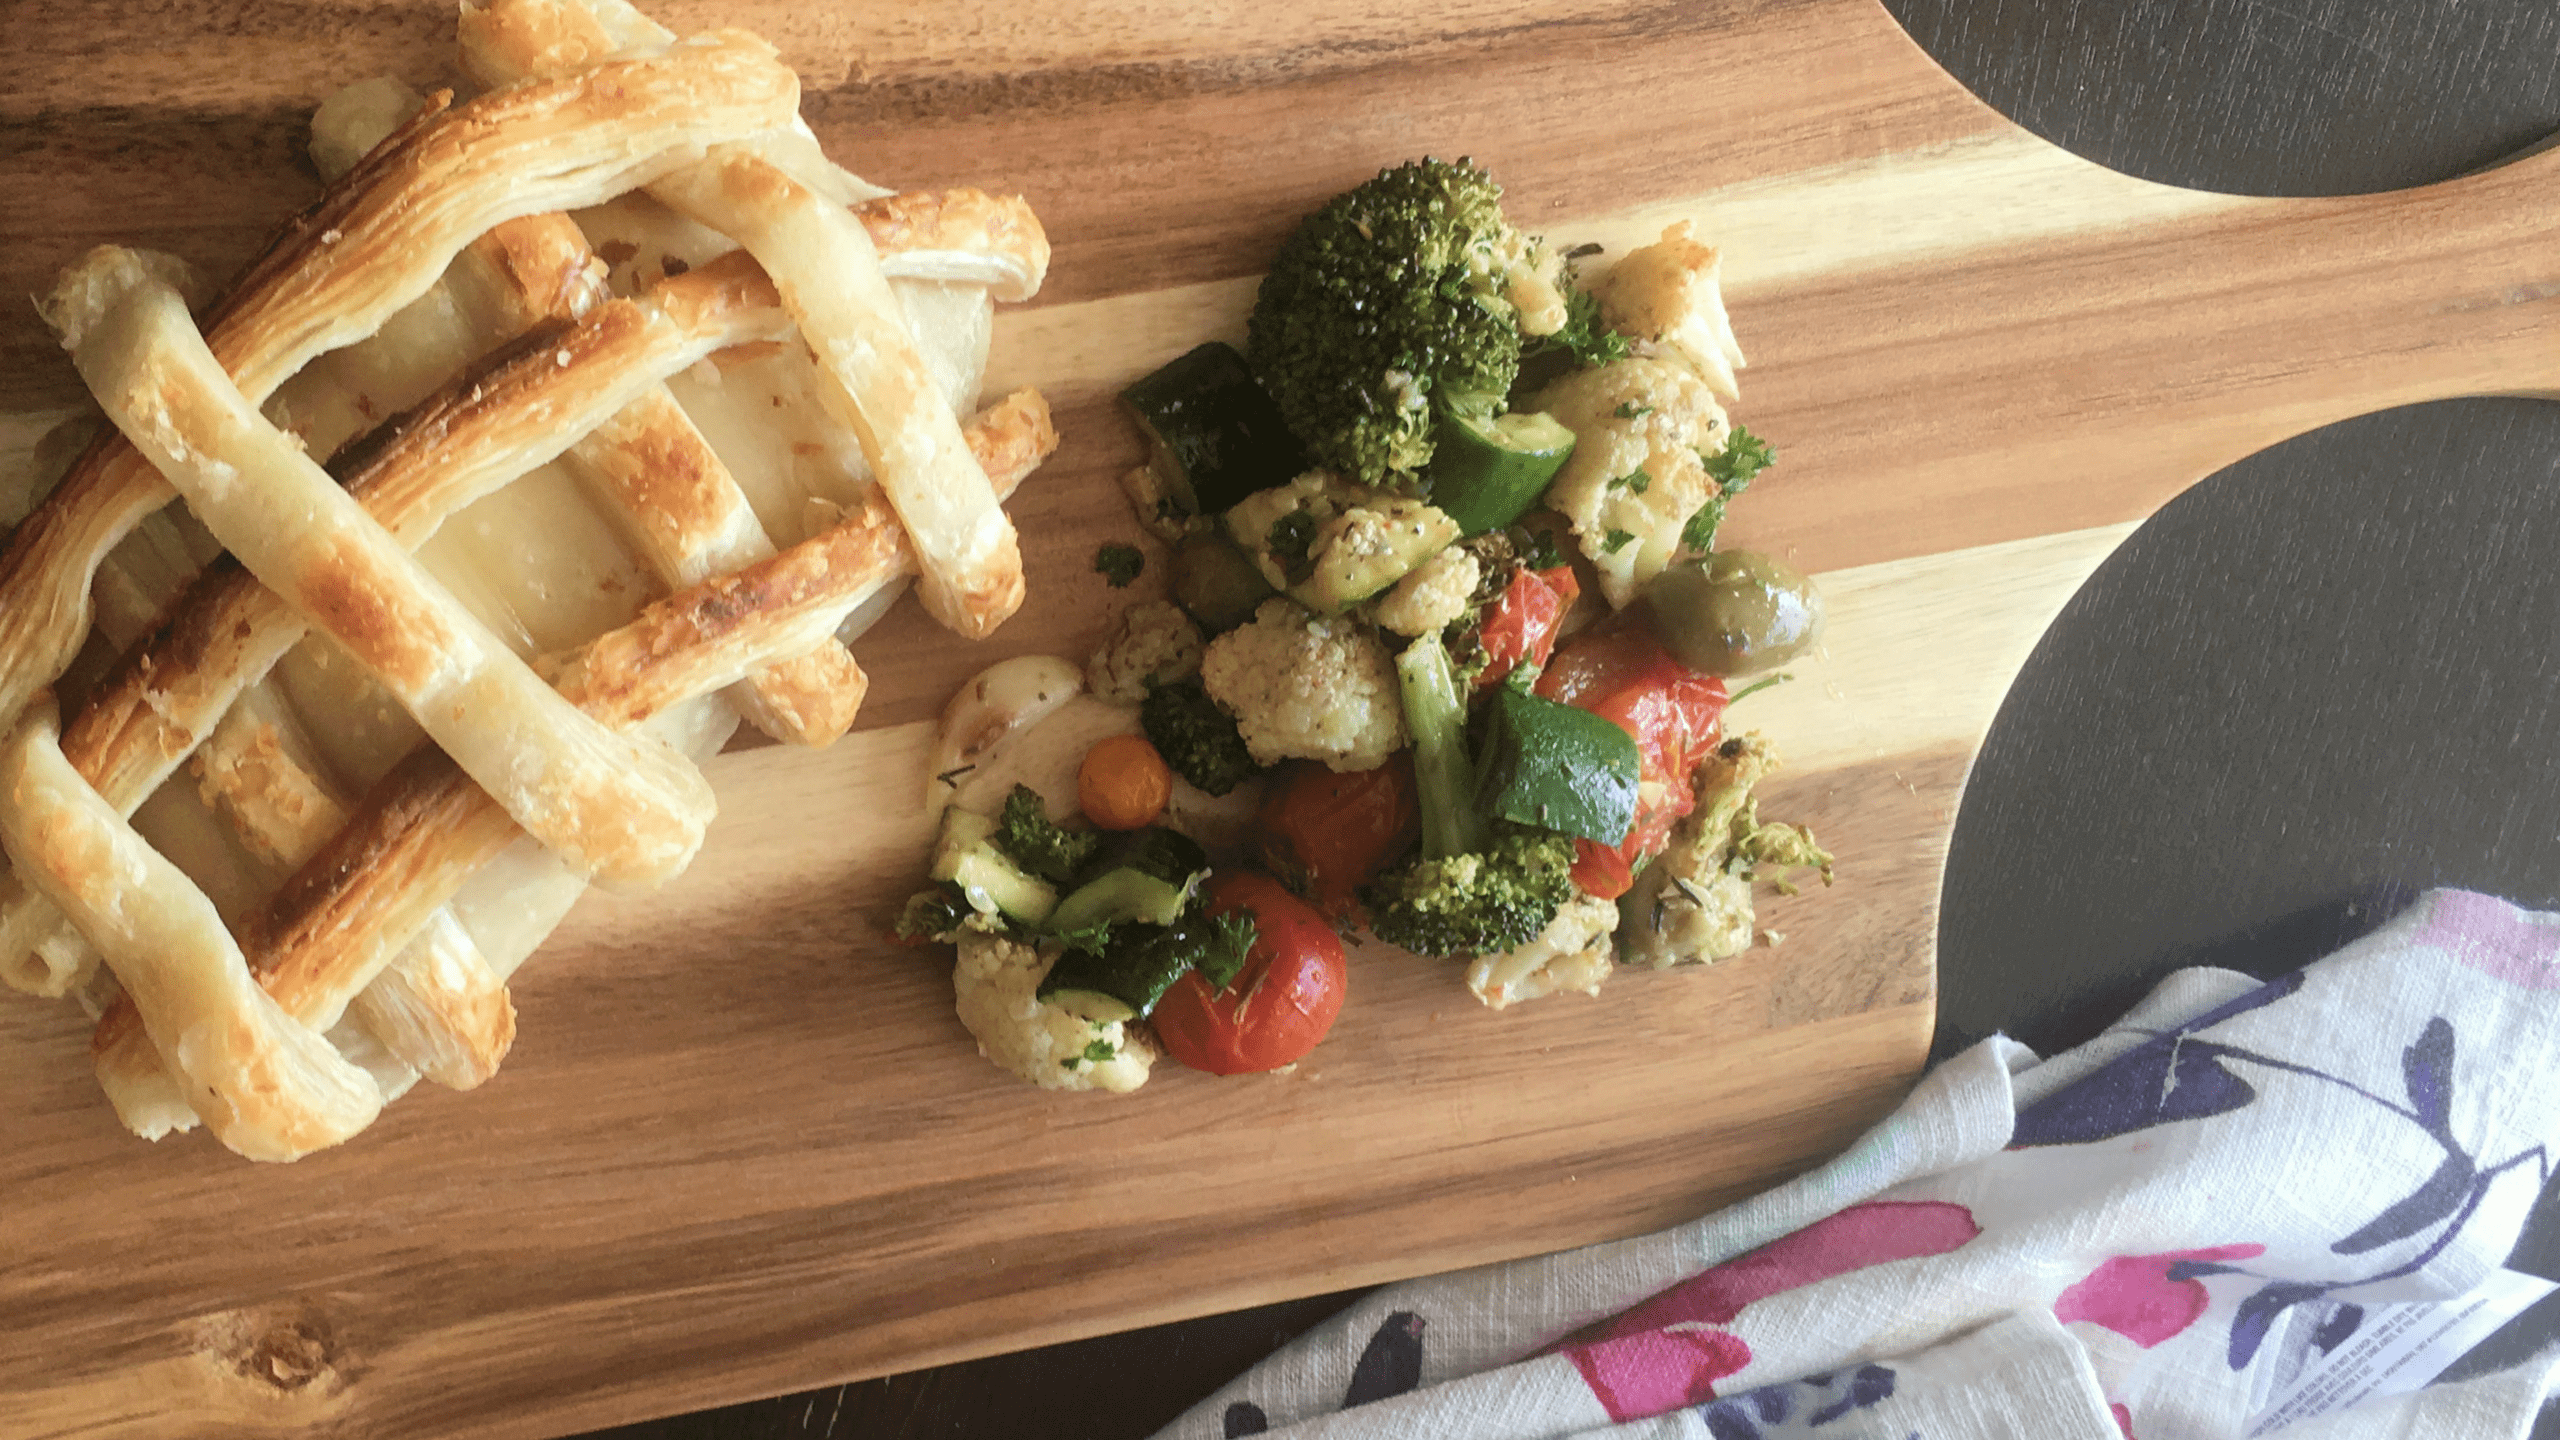 Vegan Puff Pastry Whole Foods